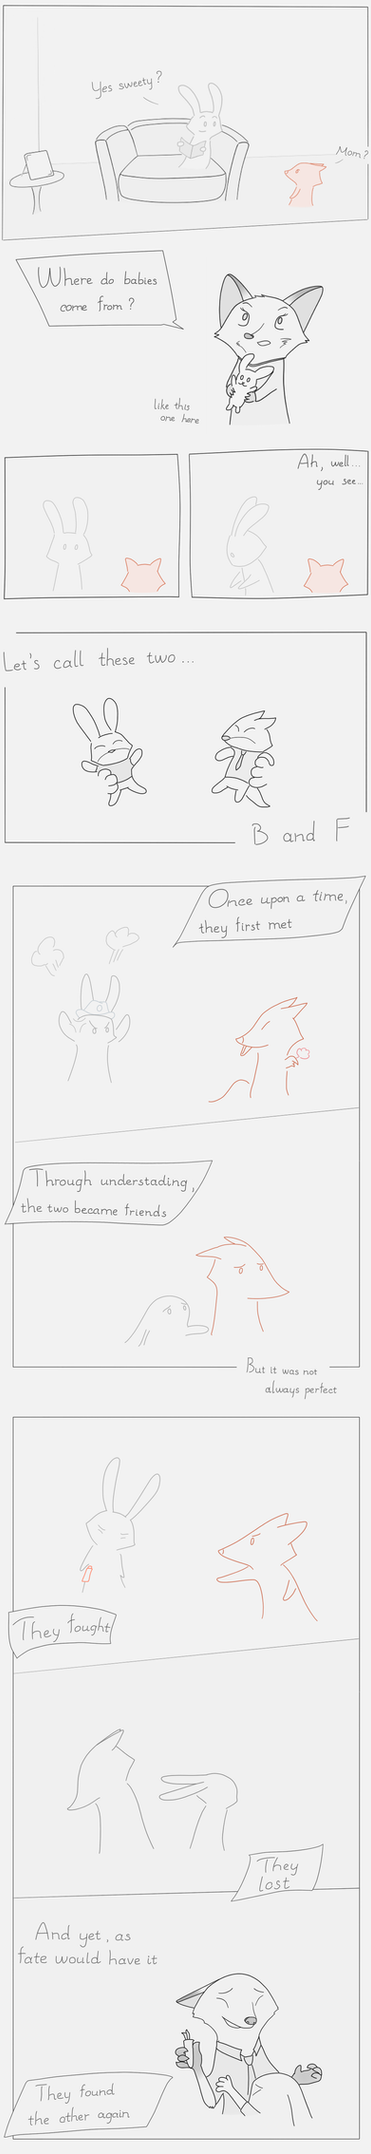 The bunny and the fox (part 1) by toannghe1997